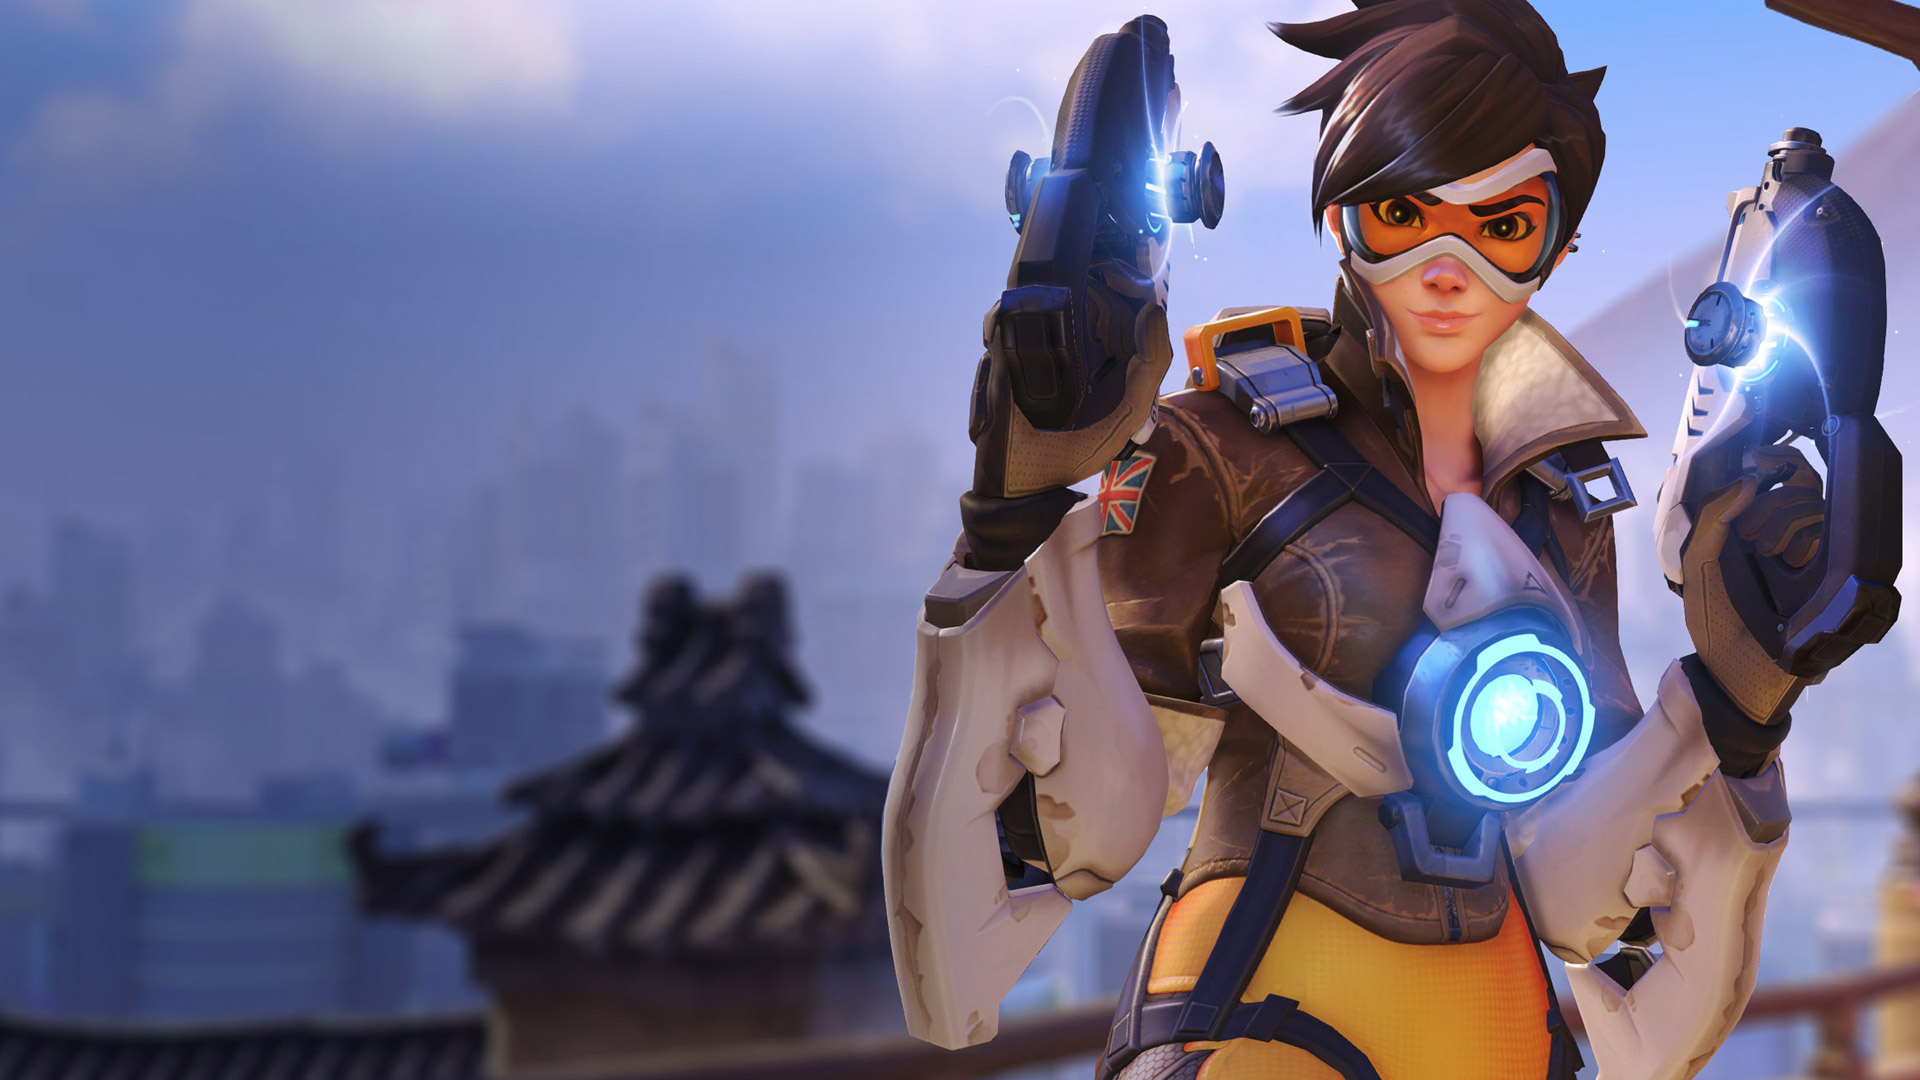 overwatch Everything You Need To Know About Overwatchs Story